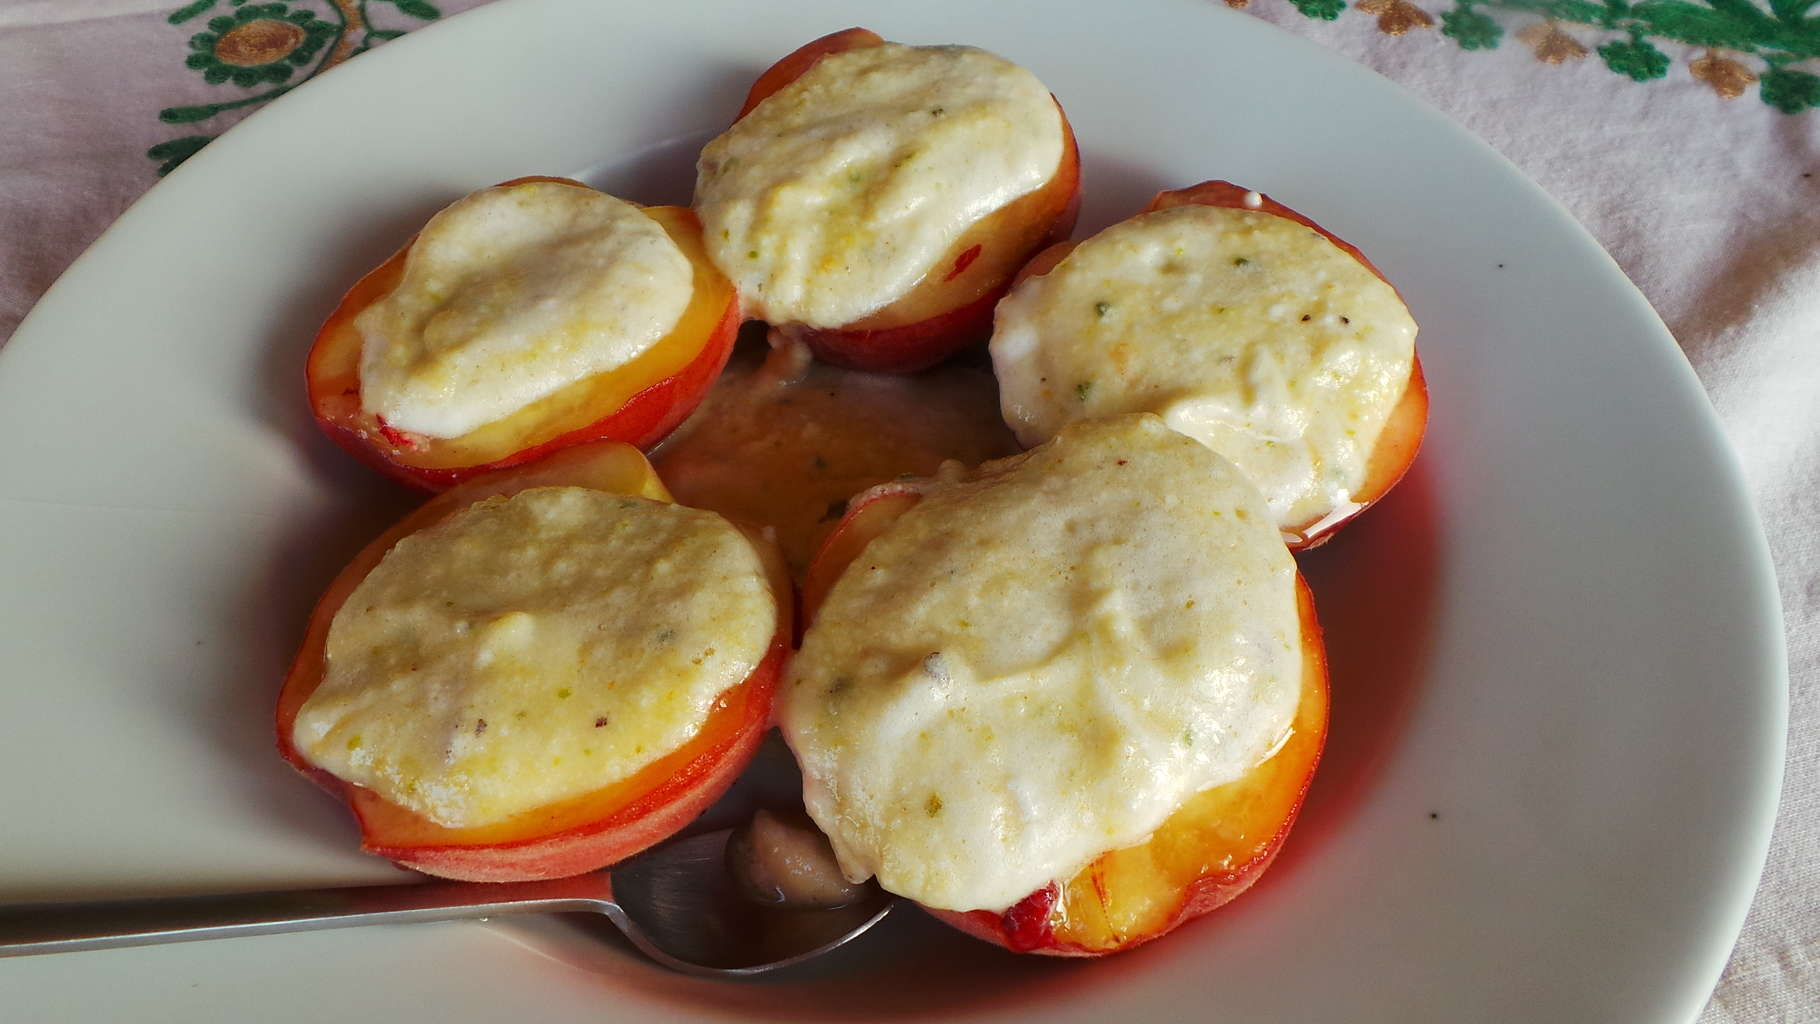 Peaches with Ricotta, Pistachio, and Apricot Preserve Sauce (CAWCOM) (3)